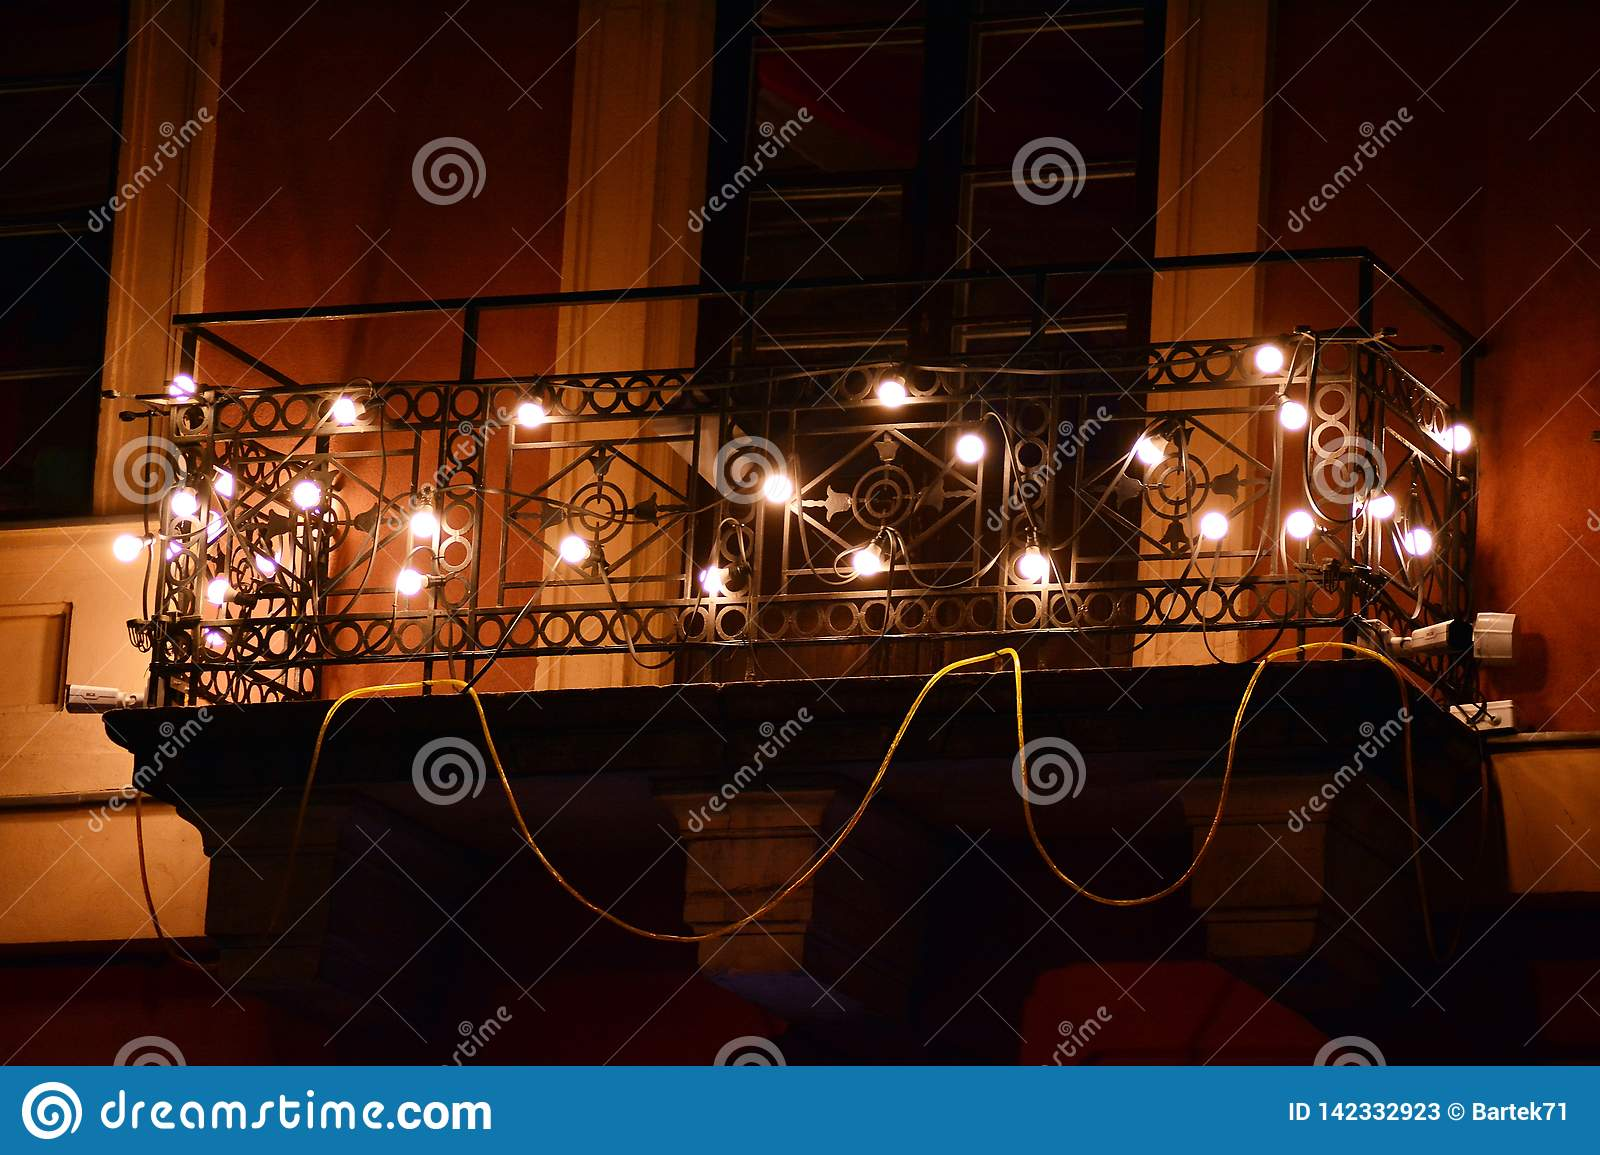 The Amazing Effect Of Dozens Of Led Bulbs In A Dark Room Stock Image Image Of Bright Dozens 142332923